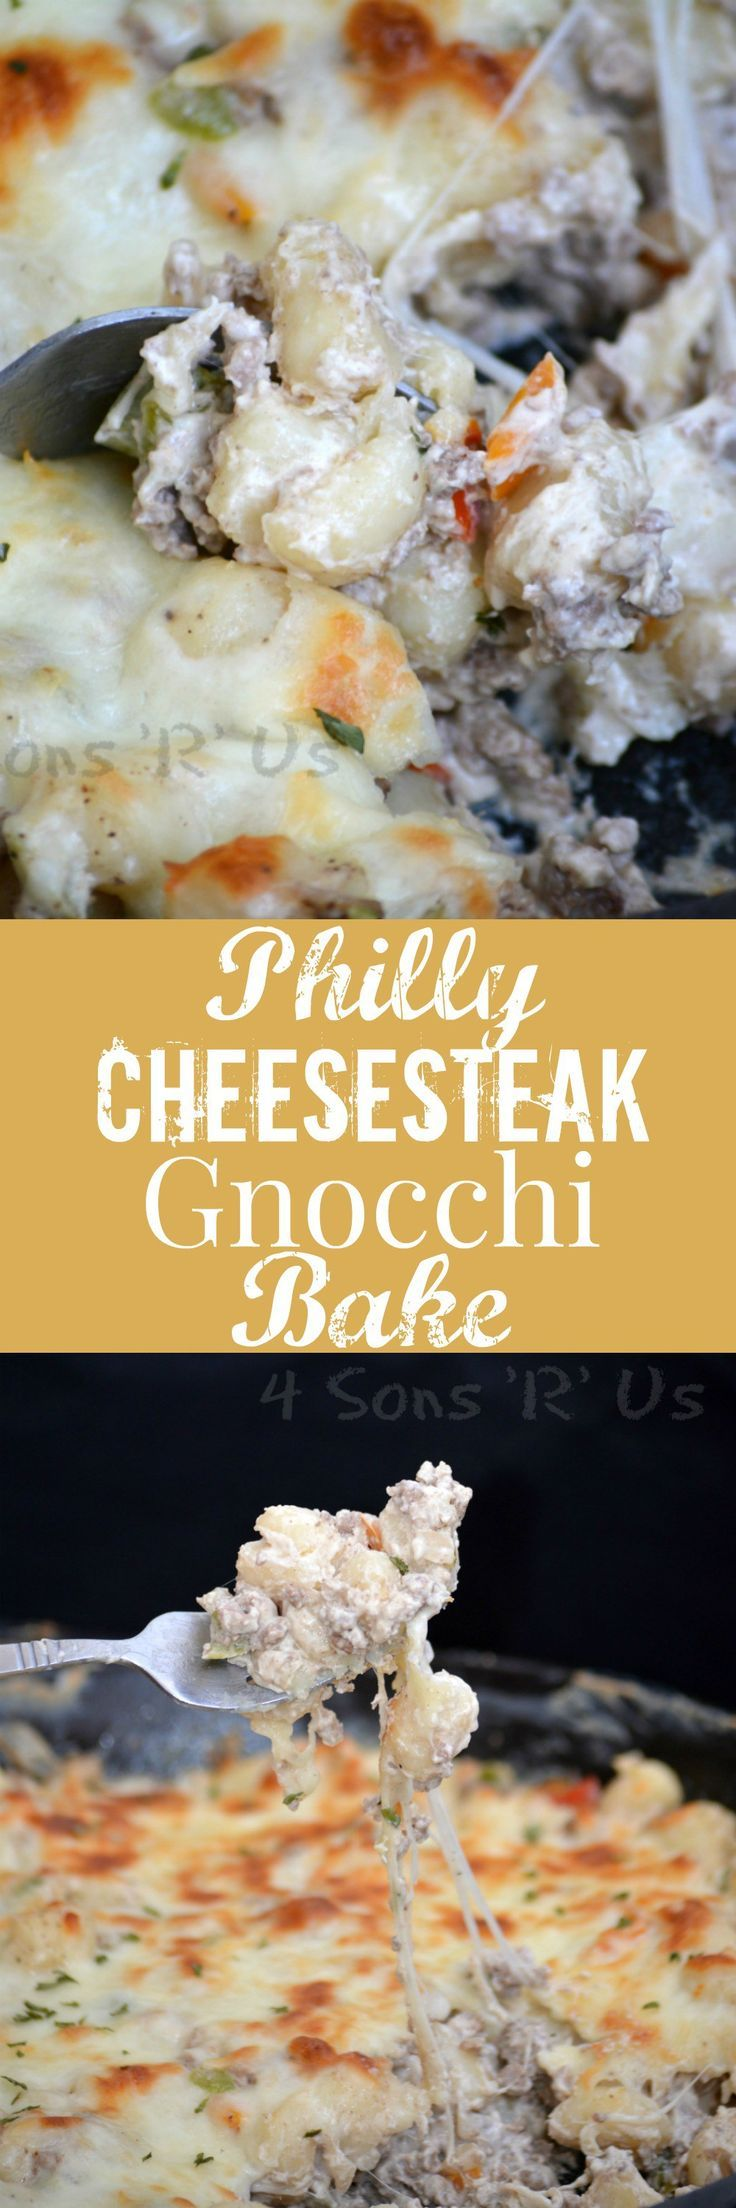 The flavors of your favorite sub sandwich are stirred into a simple skillet meal and studded with fluffy potato gnocchi and creamy cheeses. This Philly Cheesesteak Gnocchi Bake is sure to be a new dinner menu must-have.